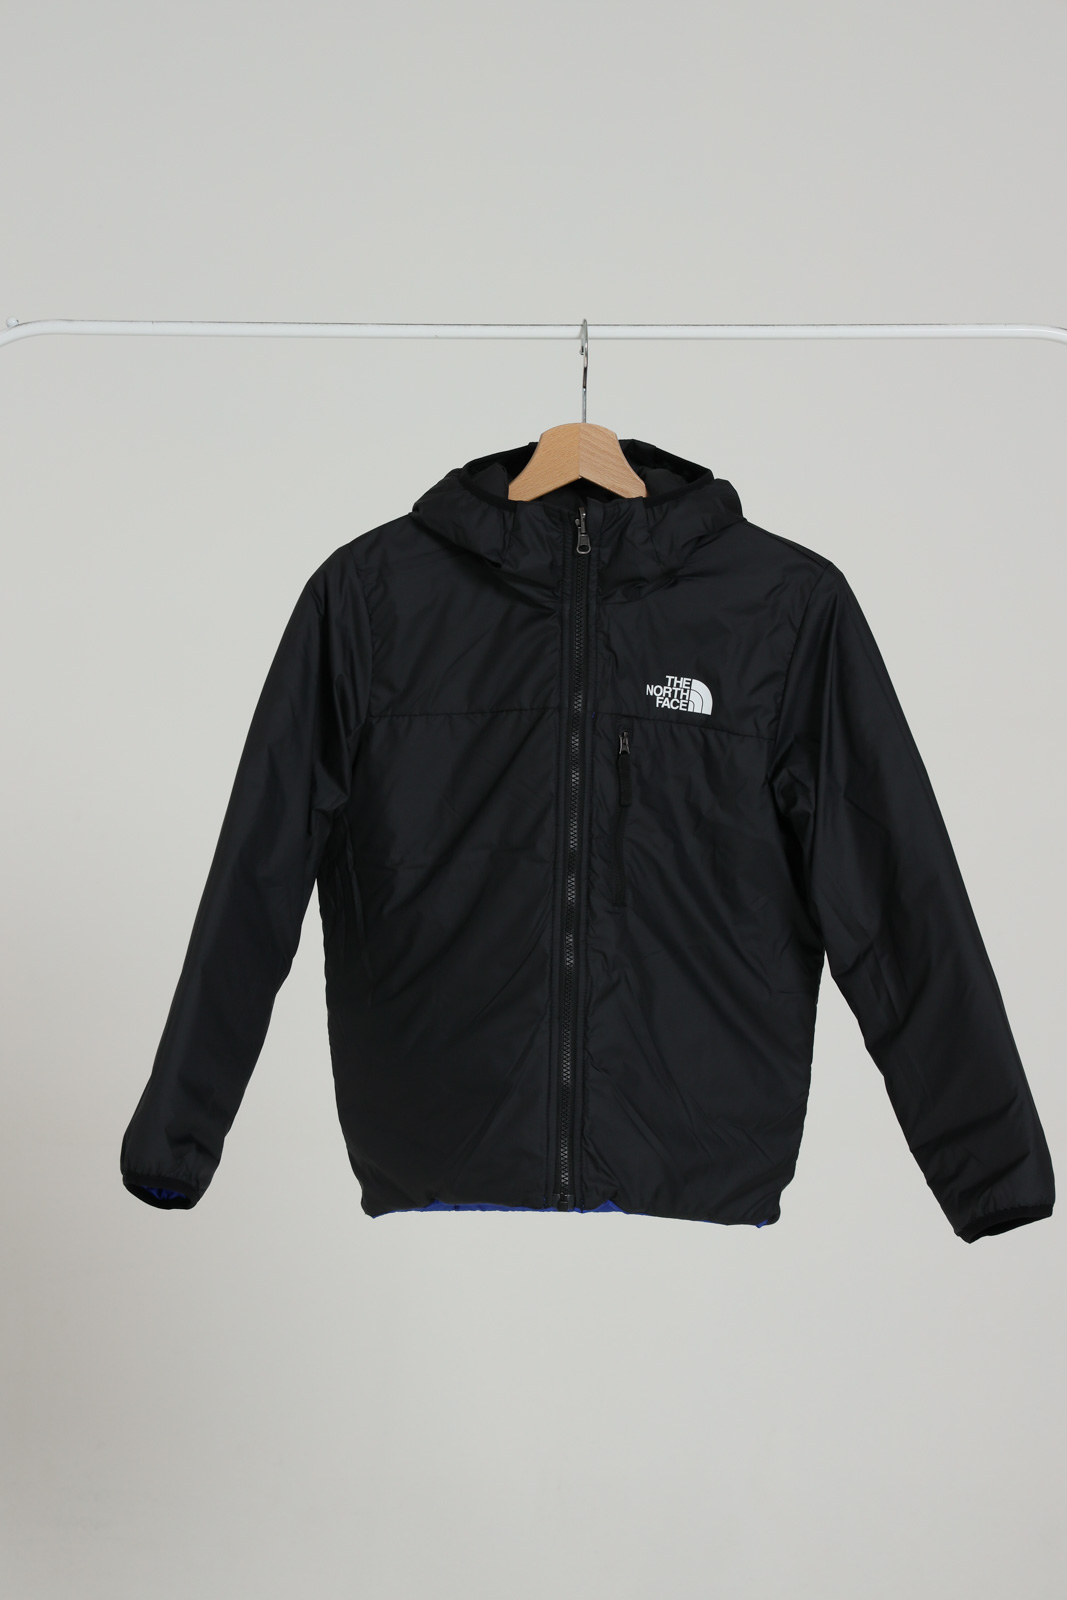 Giubbotto con zip THE NORTH FACE | Giubbotti | NF0A4TJGJK31JK31